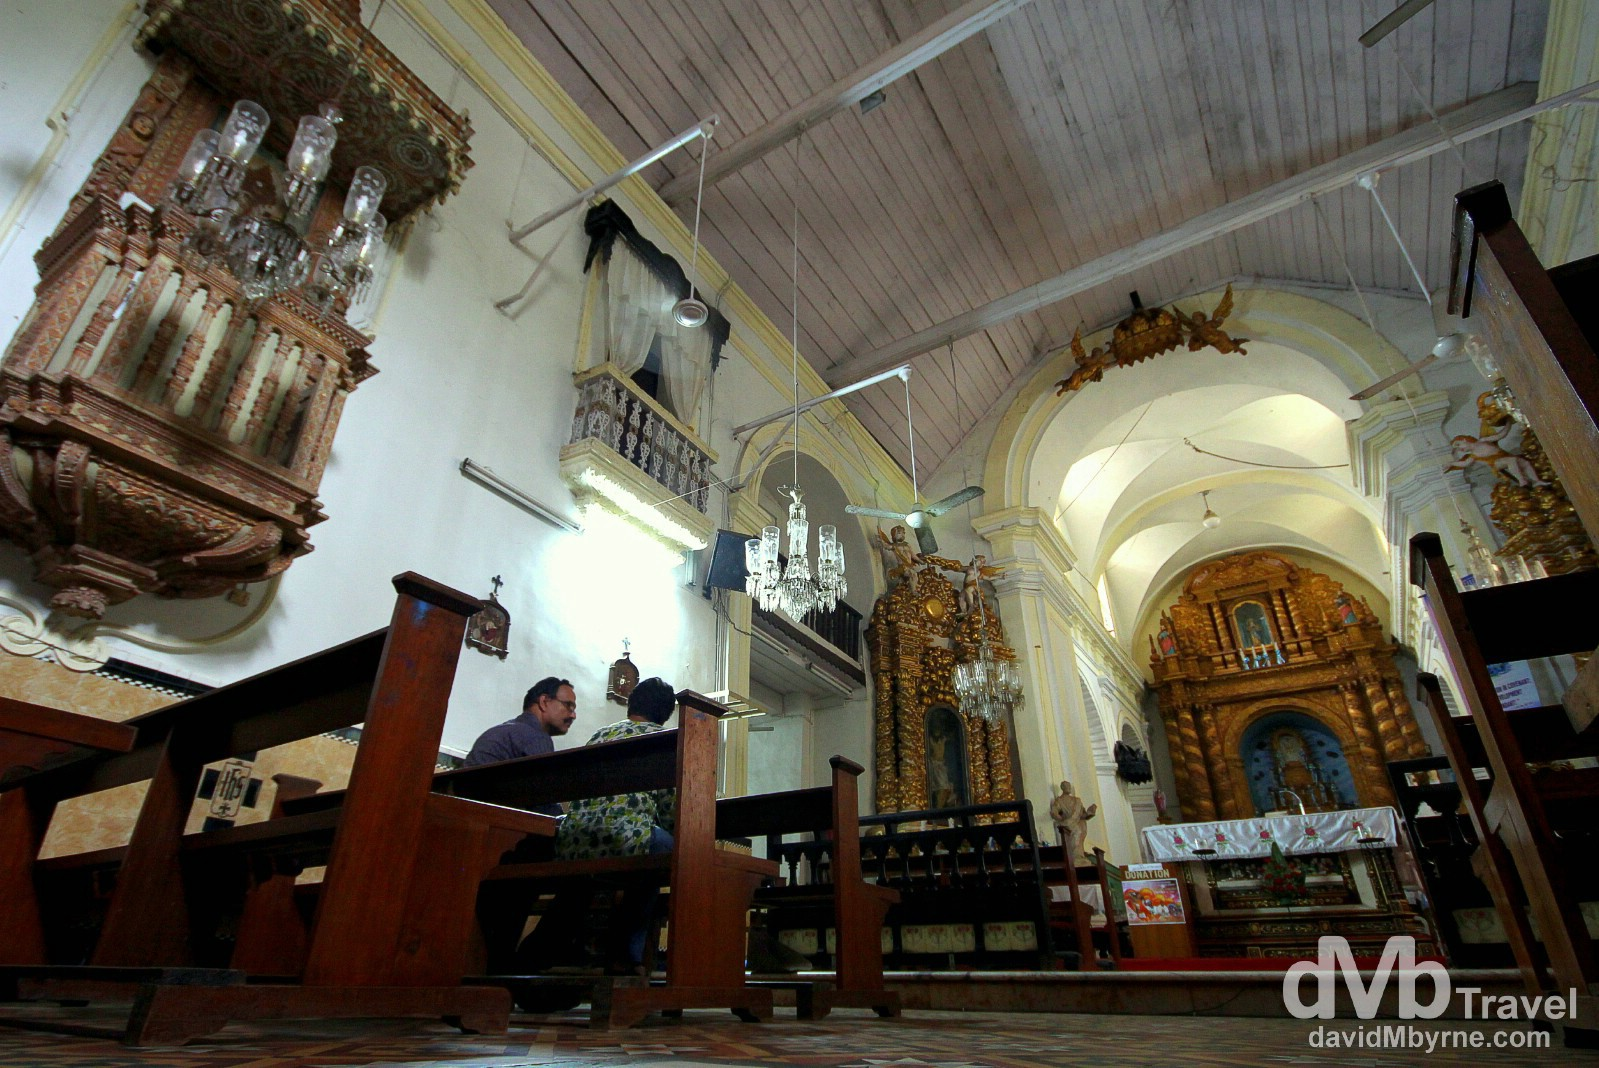 Inside the Church Of Our Lady Of The Immaculate Conception, Panaji, Goa, India. September 28th 2012.